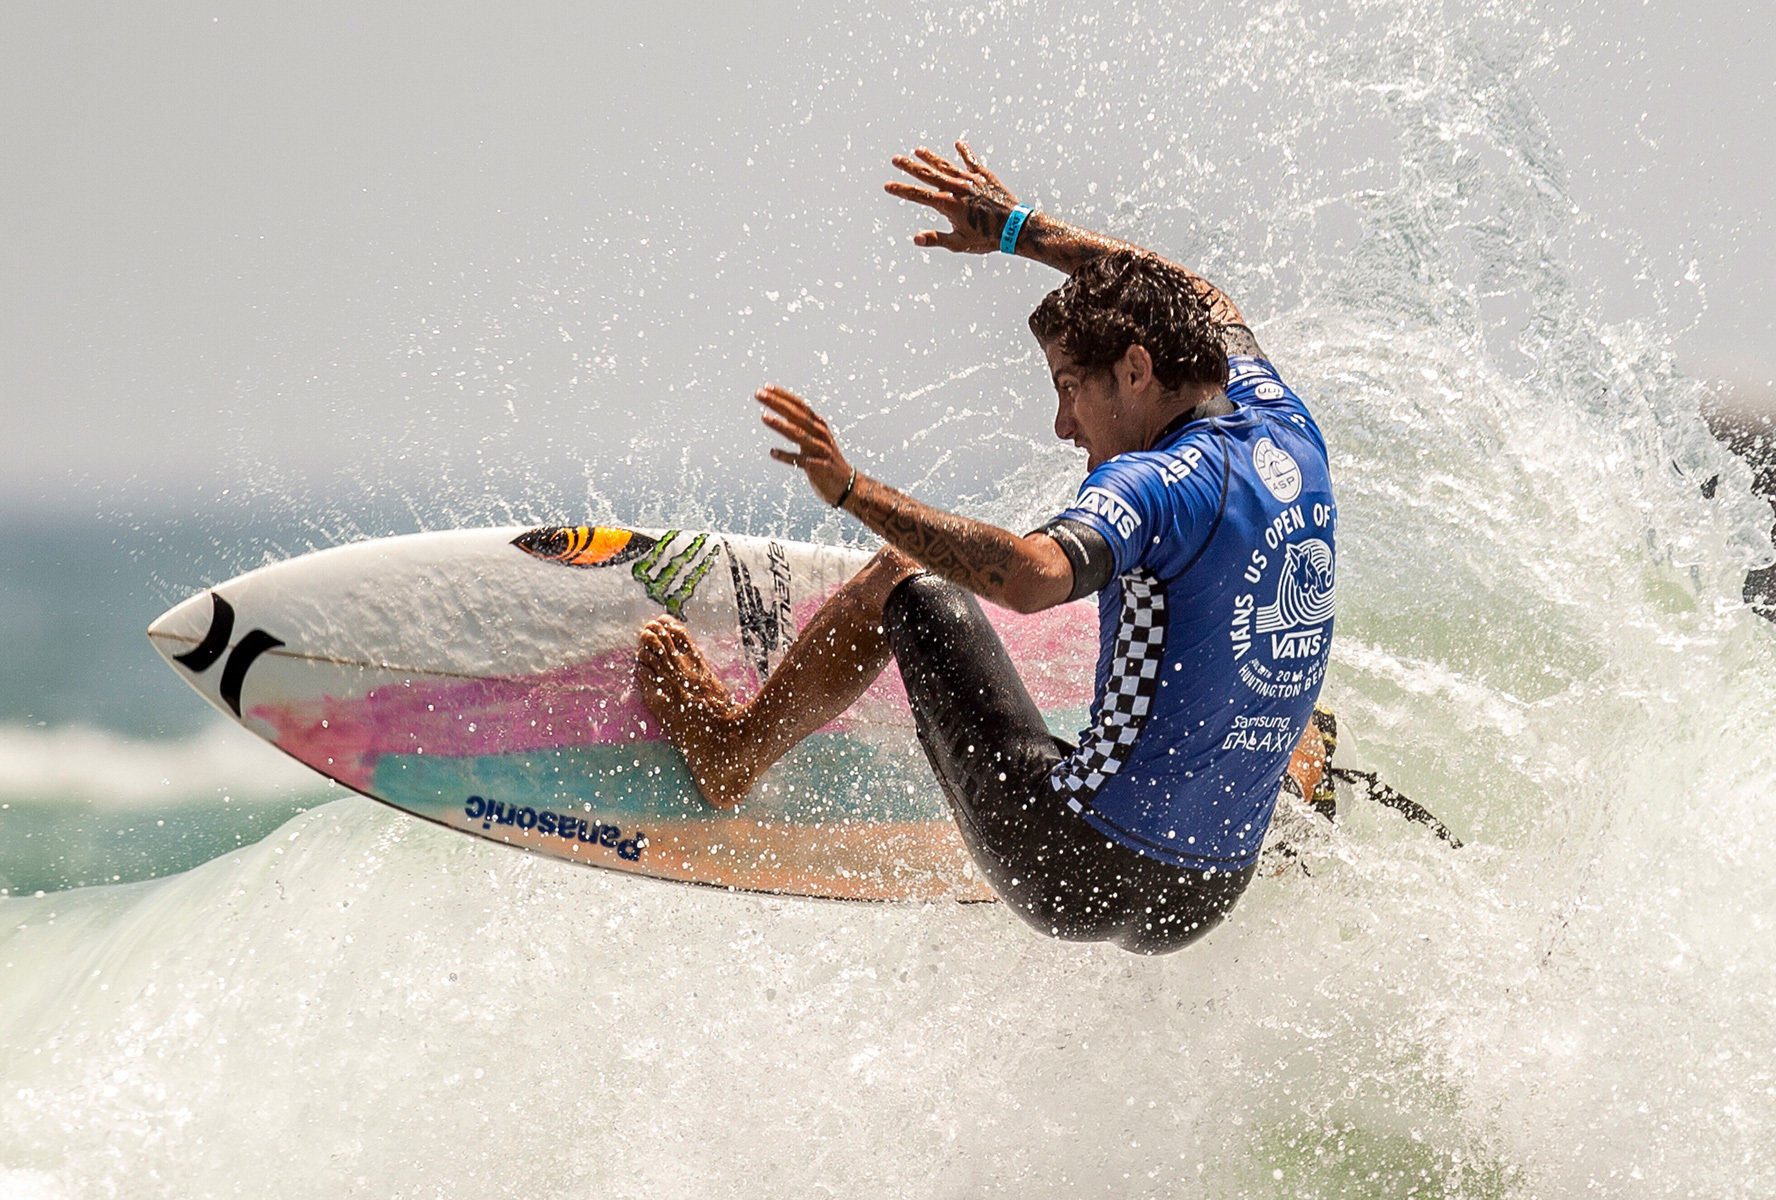 Vans US Open of Surfing 2014; Felipe Toledo